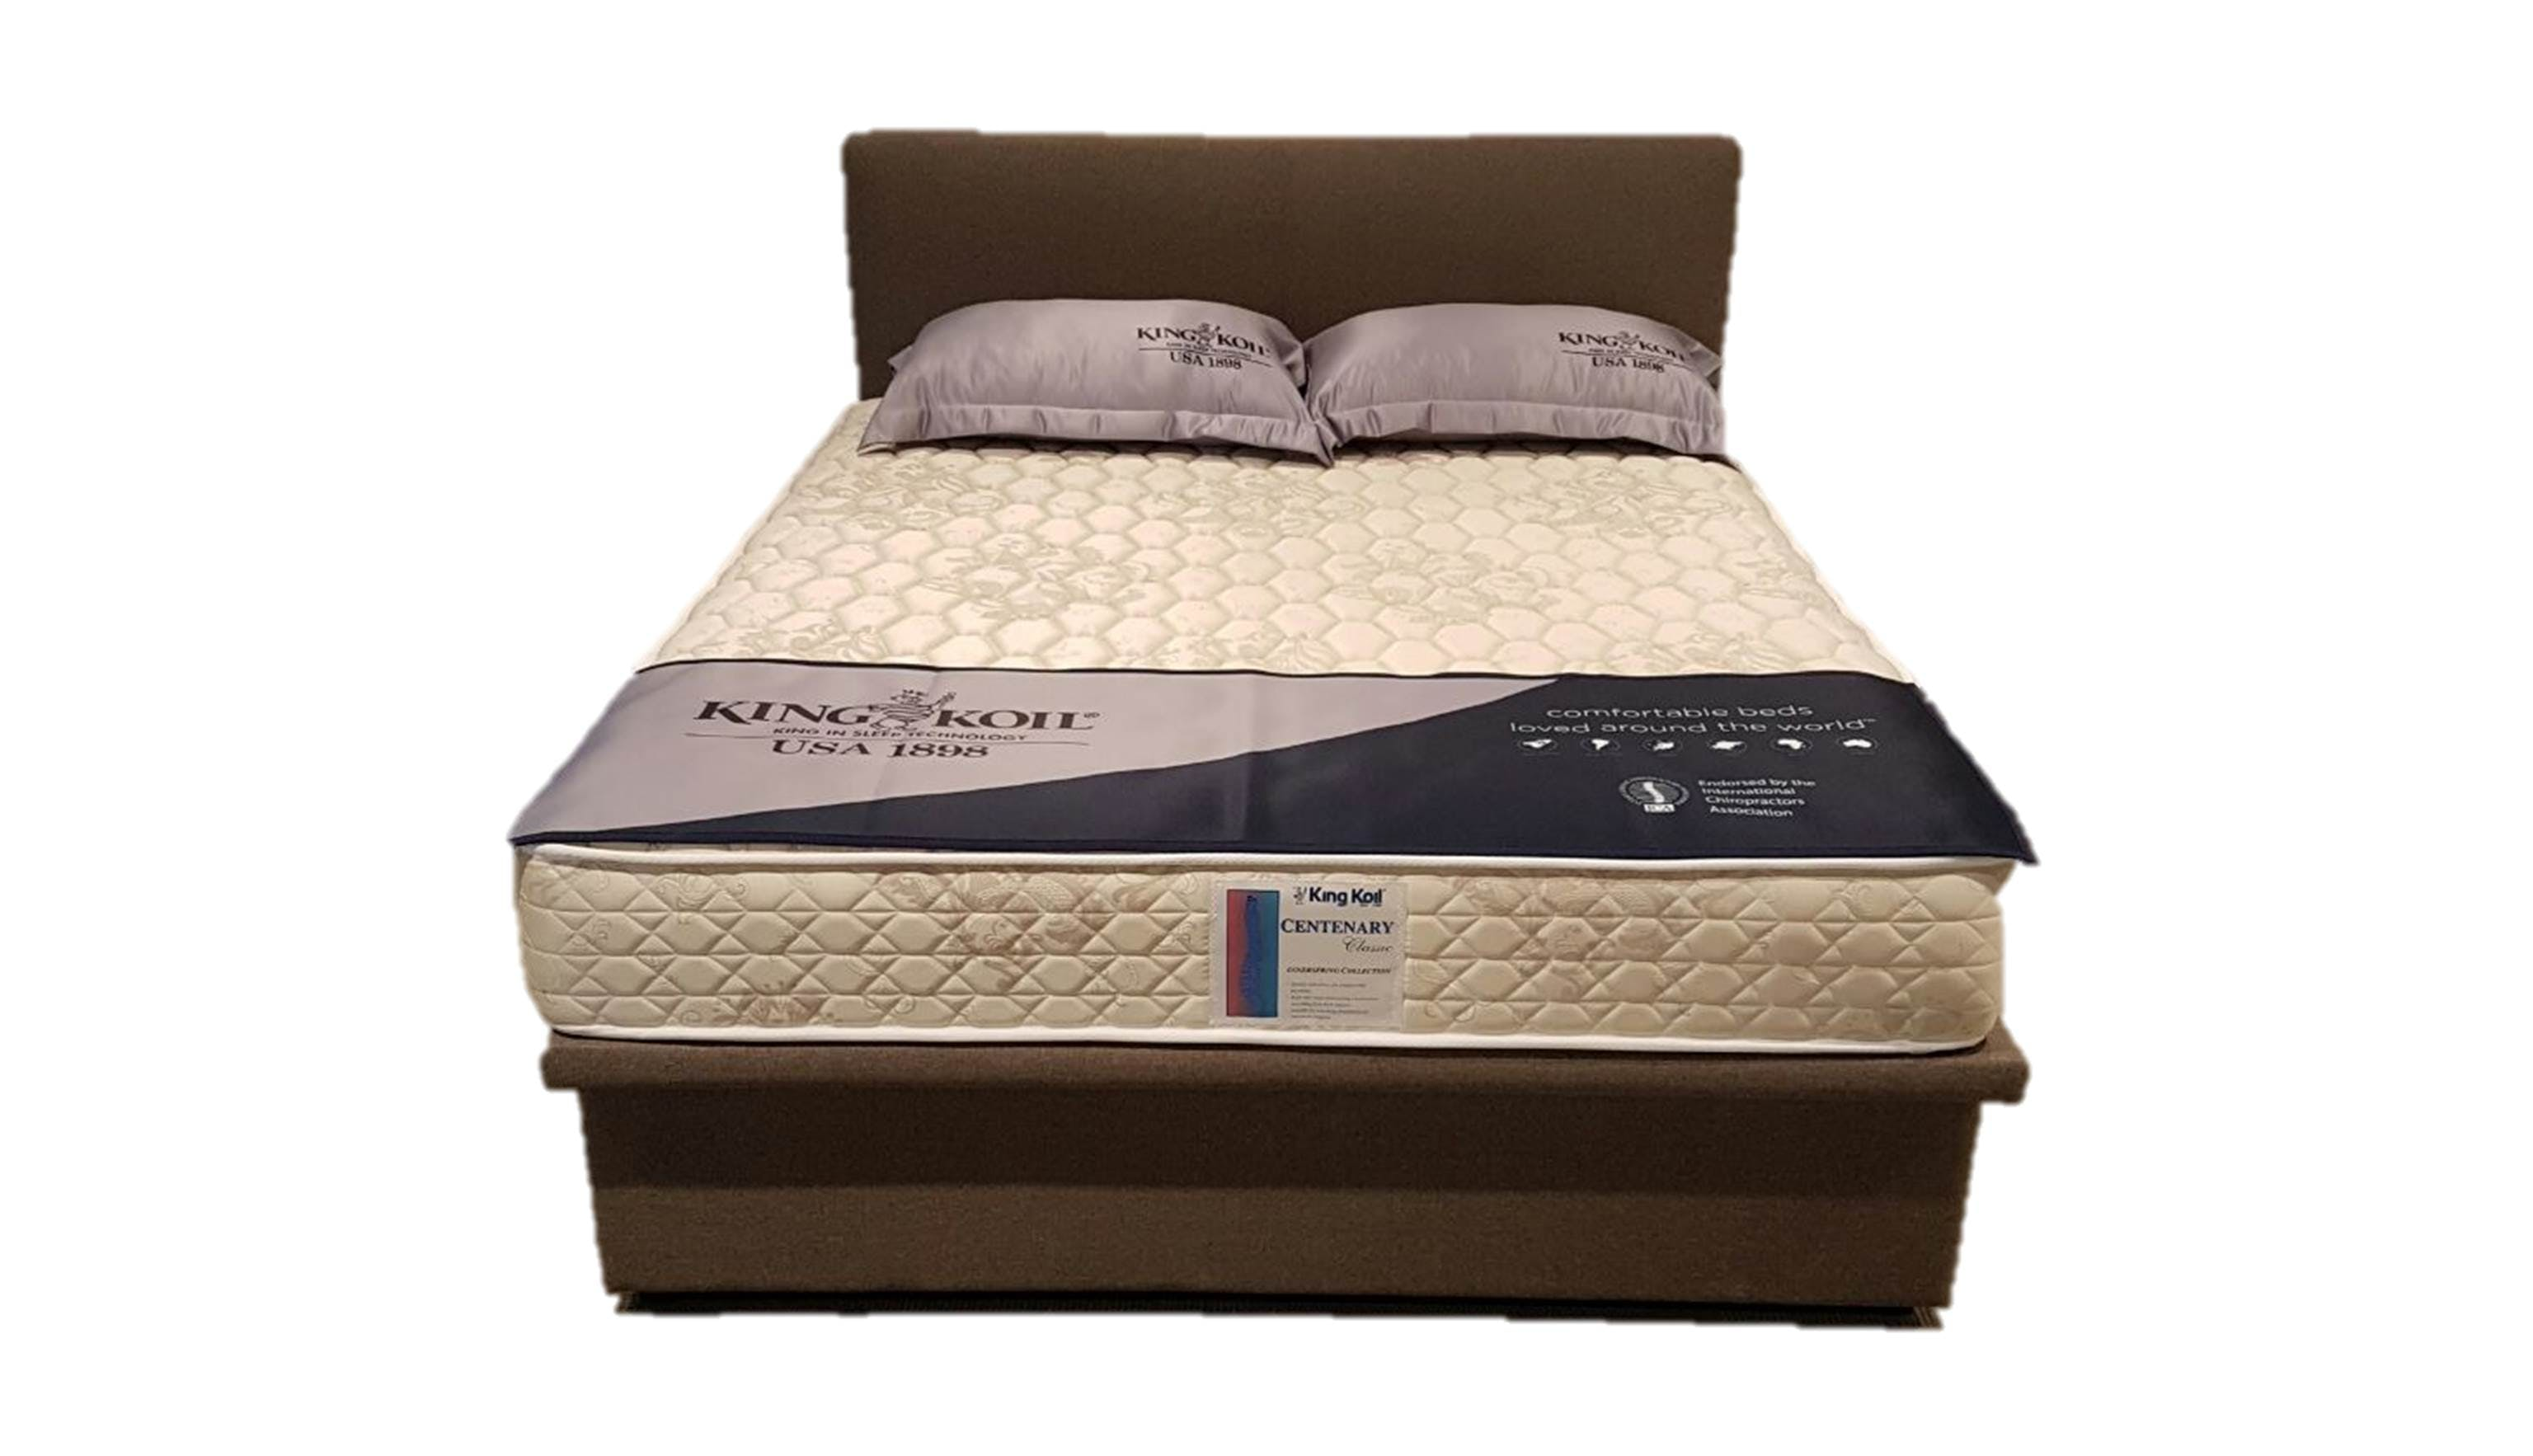 King Koil Centenary Classic Queen Size Spring Mattress with Free EE ...